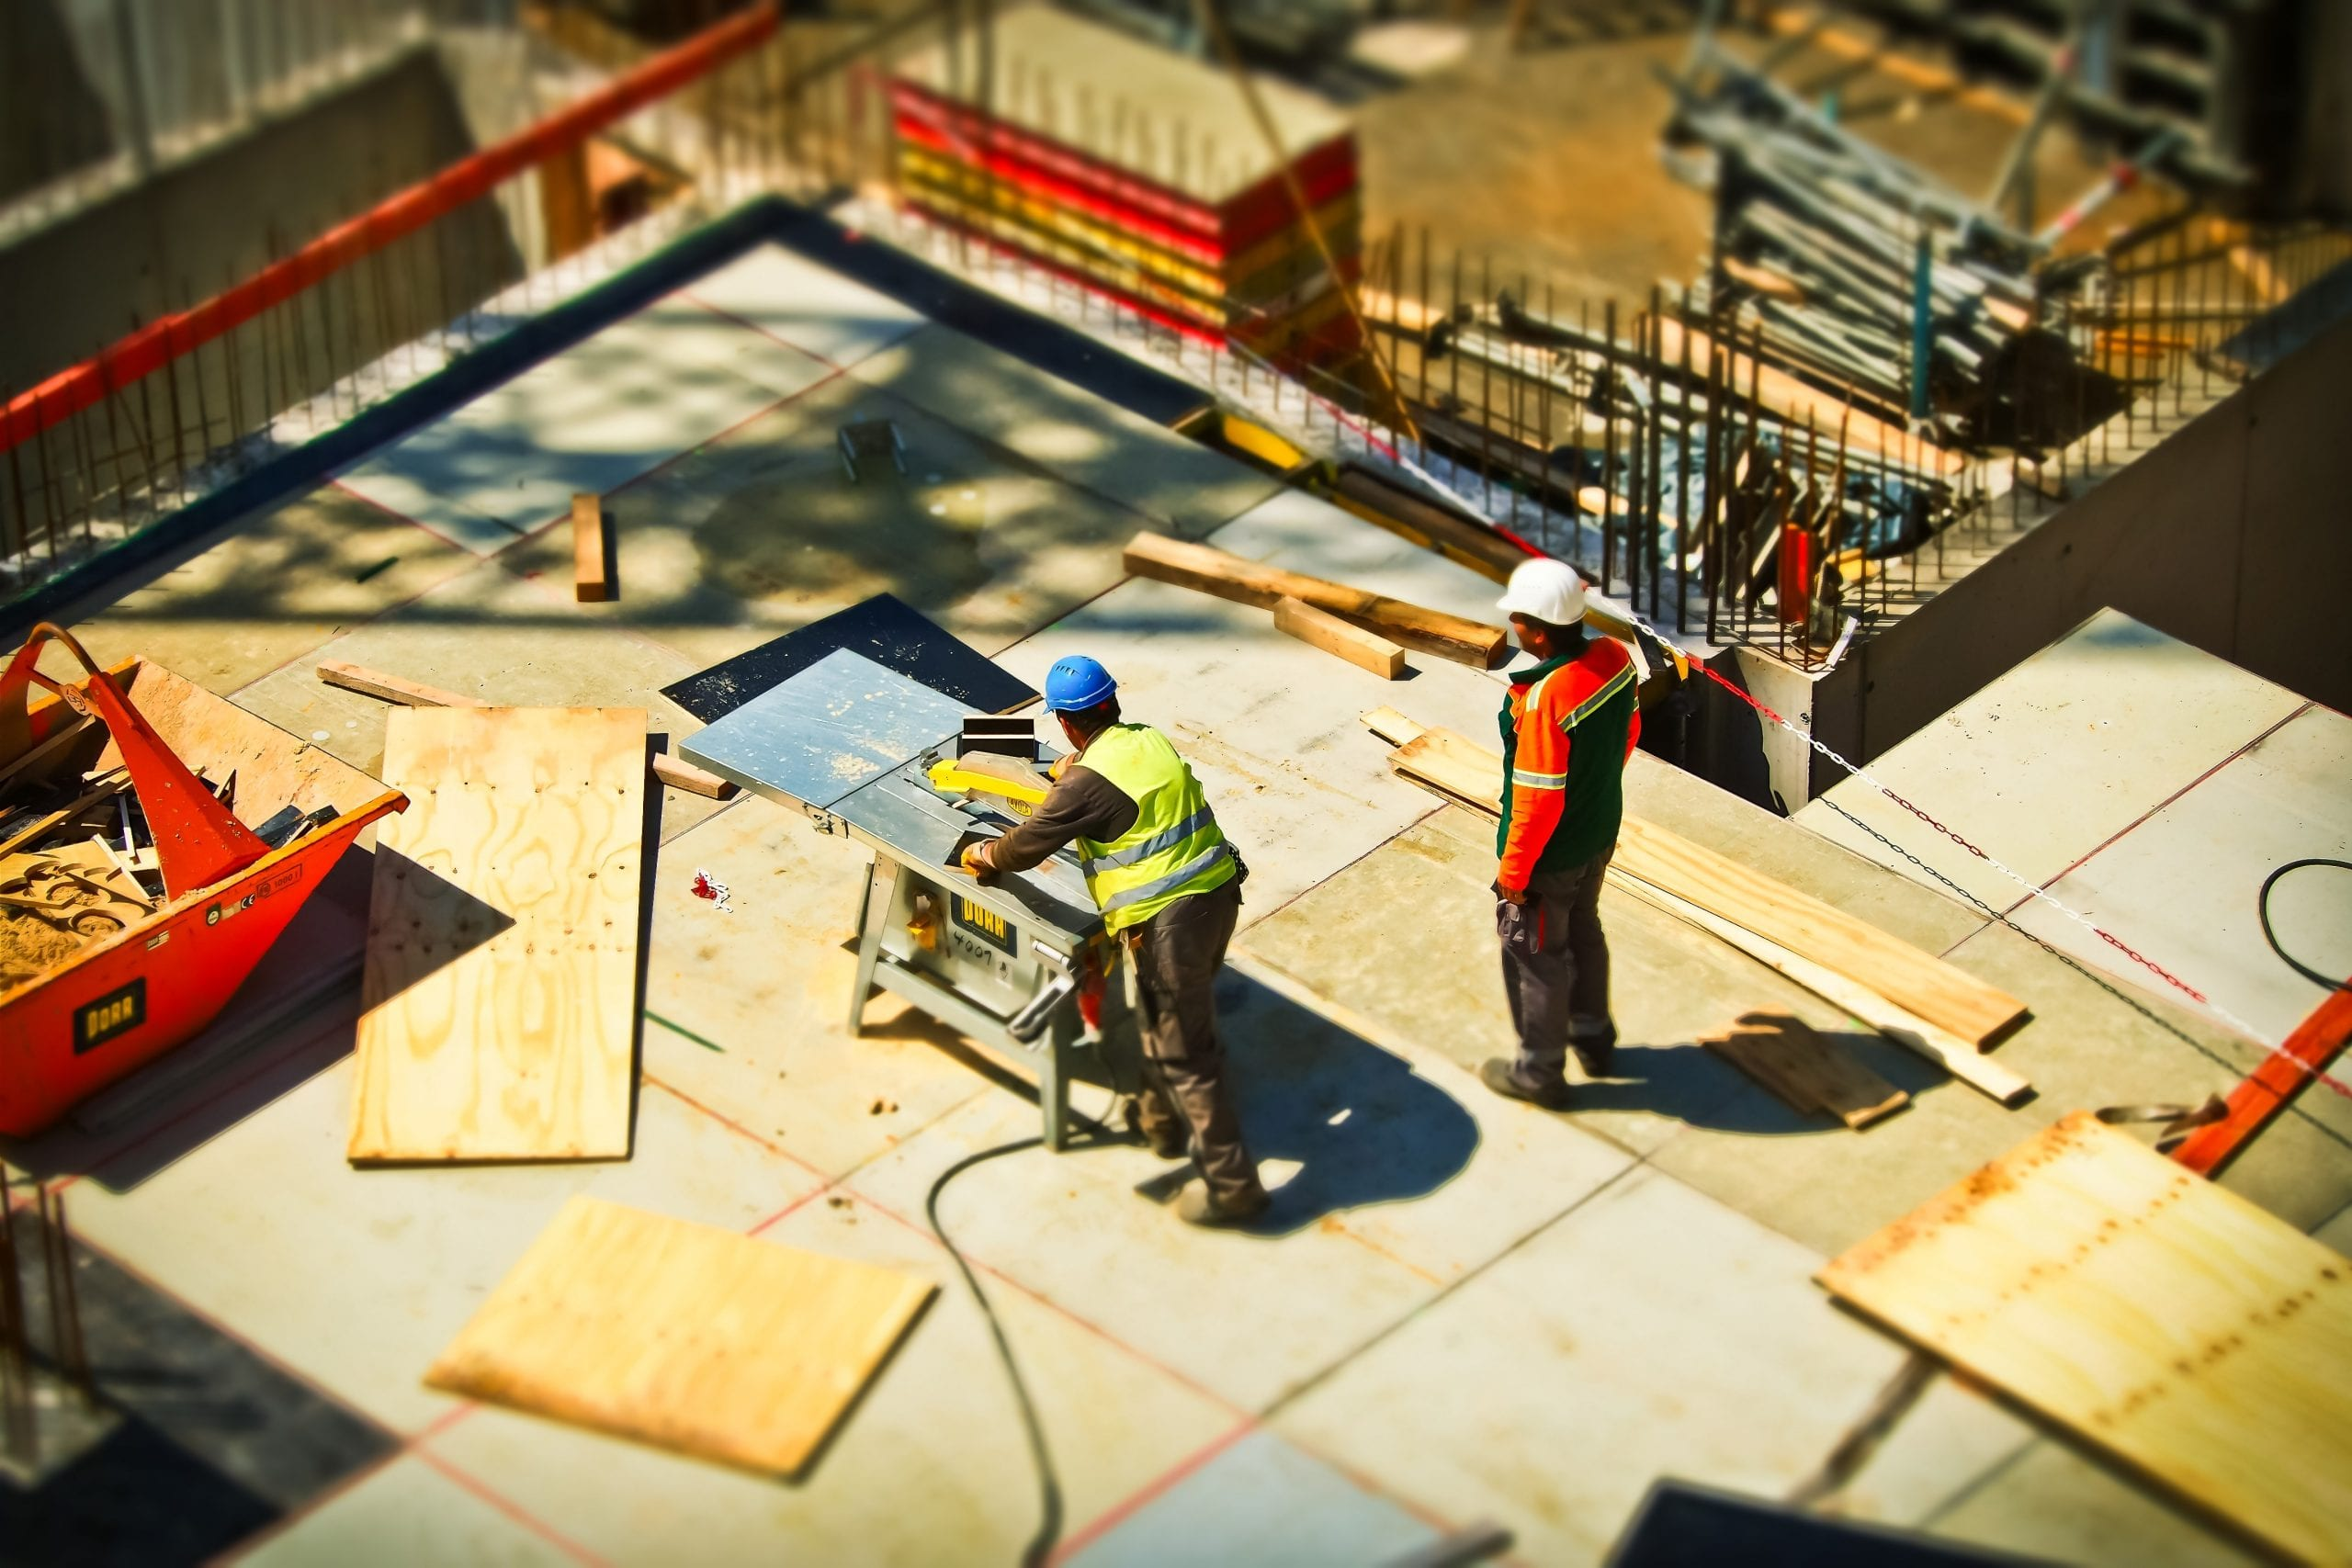 image of construction workers working on commercial construction project